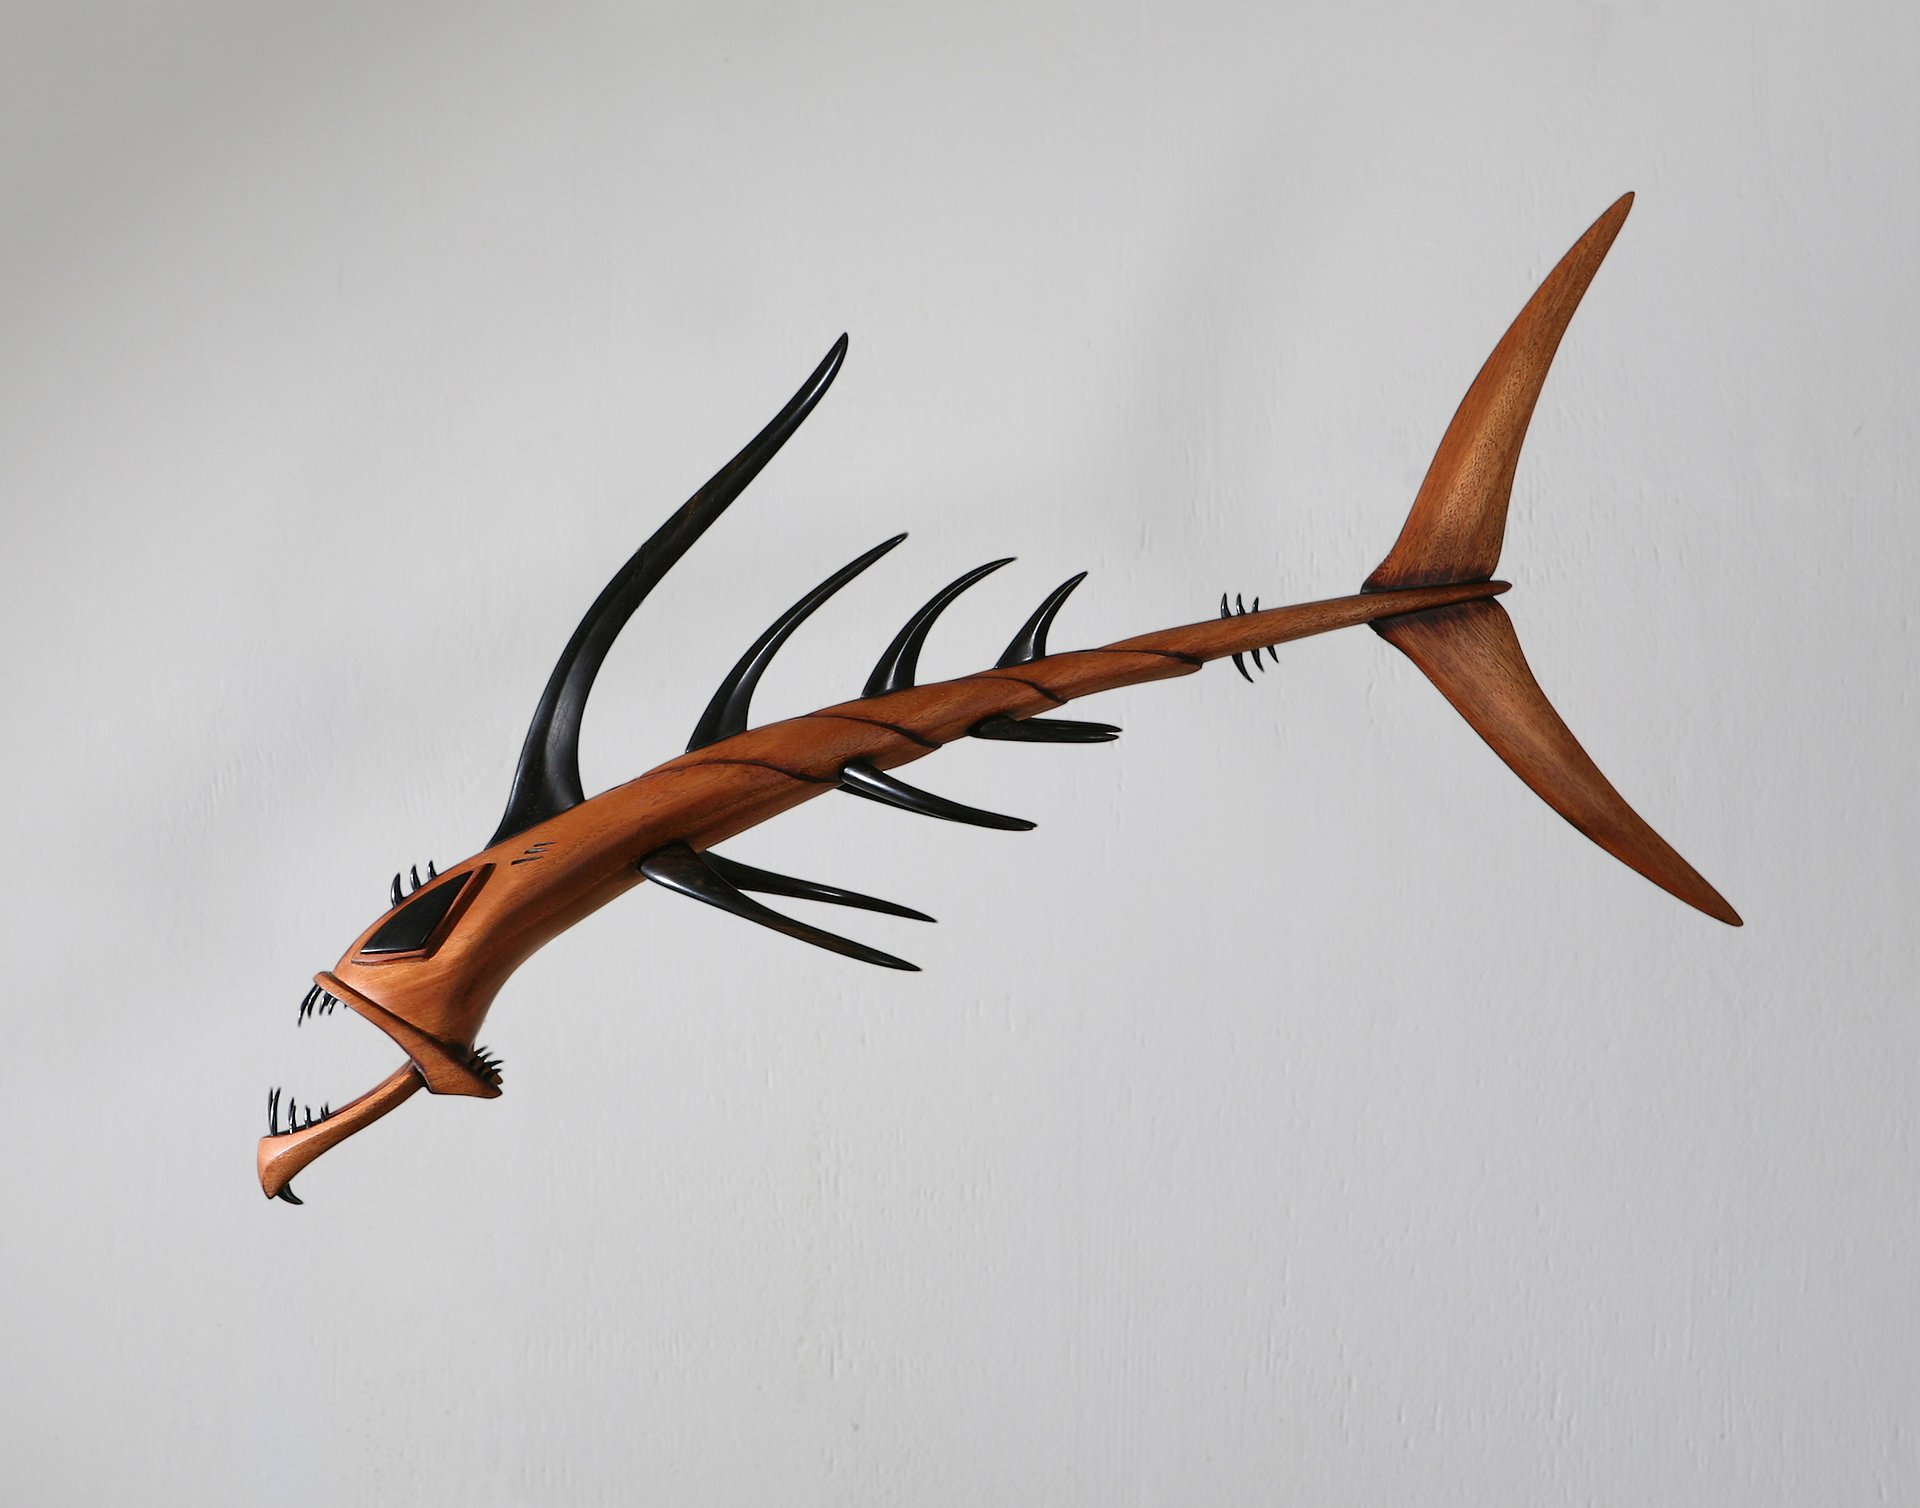 Wooden Dragon Fish sculpture